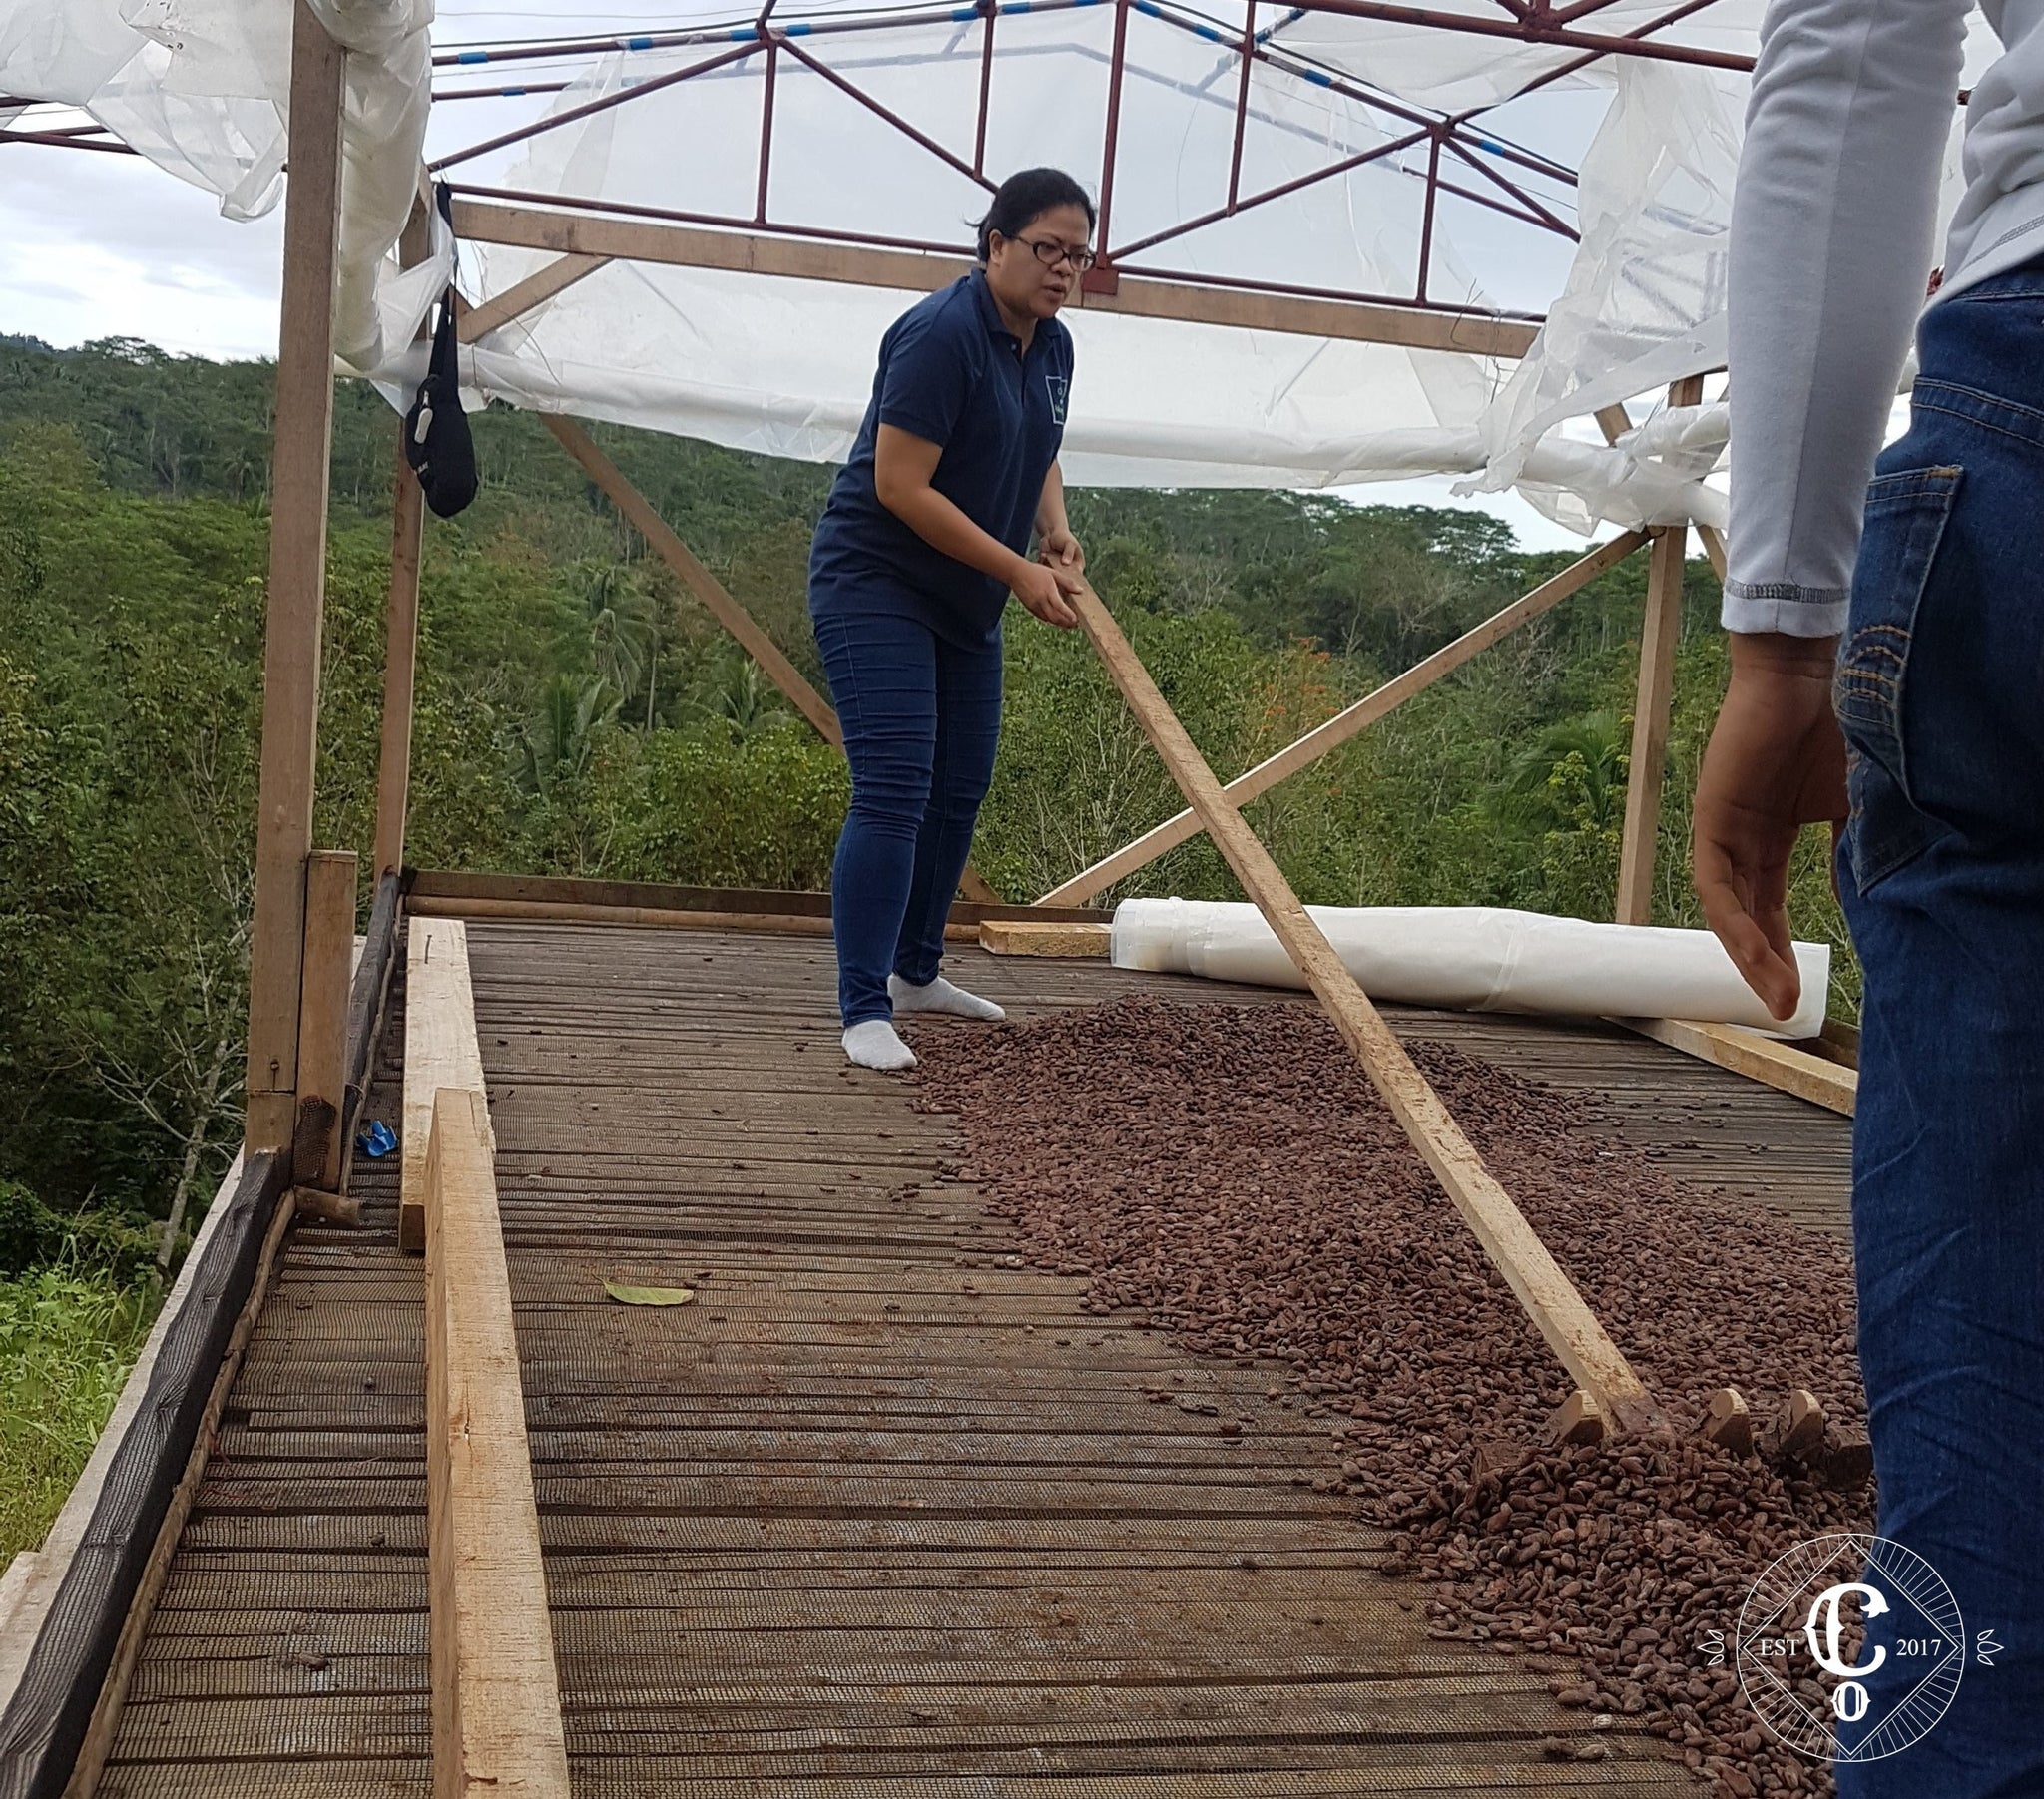 Co Chocolat cacao beans drying at the solar dryer